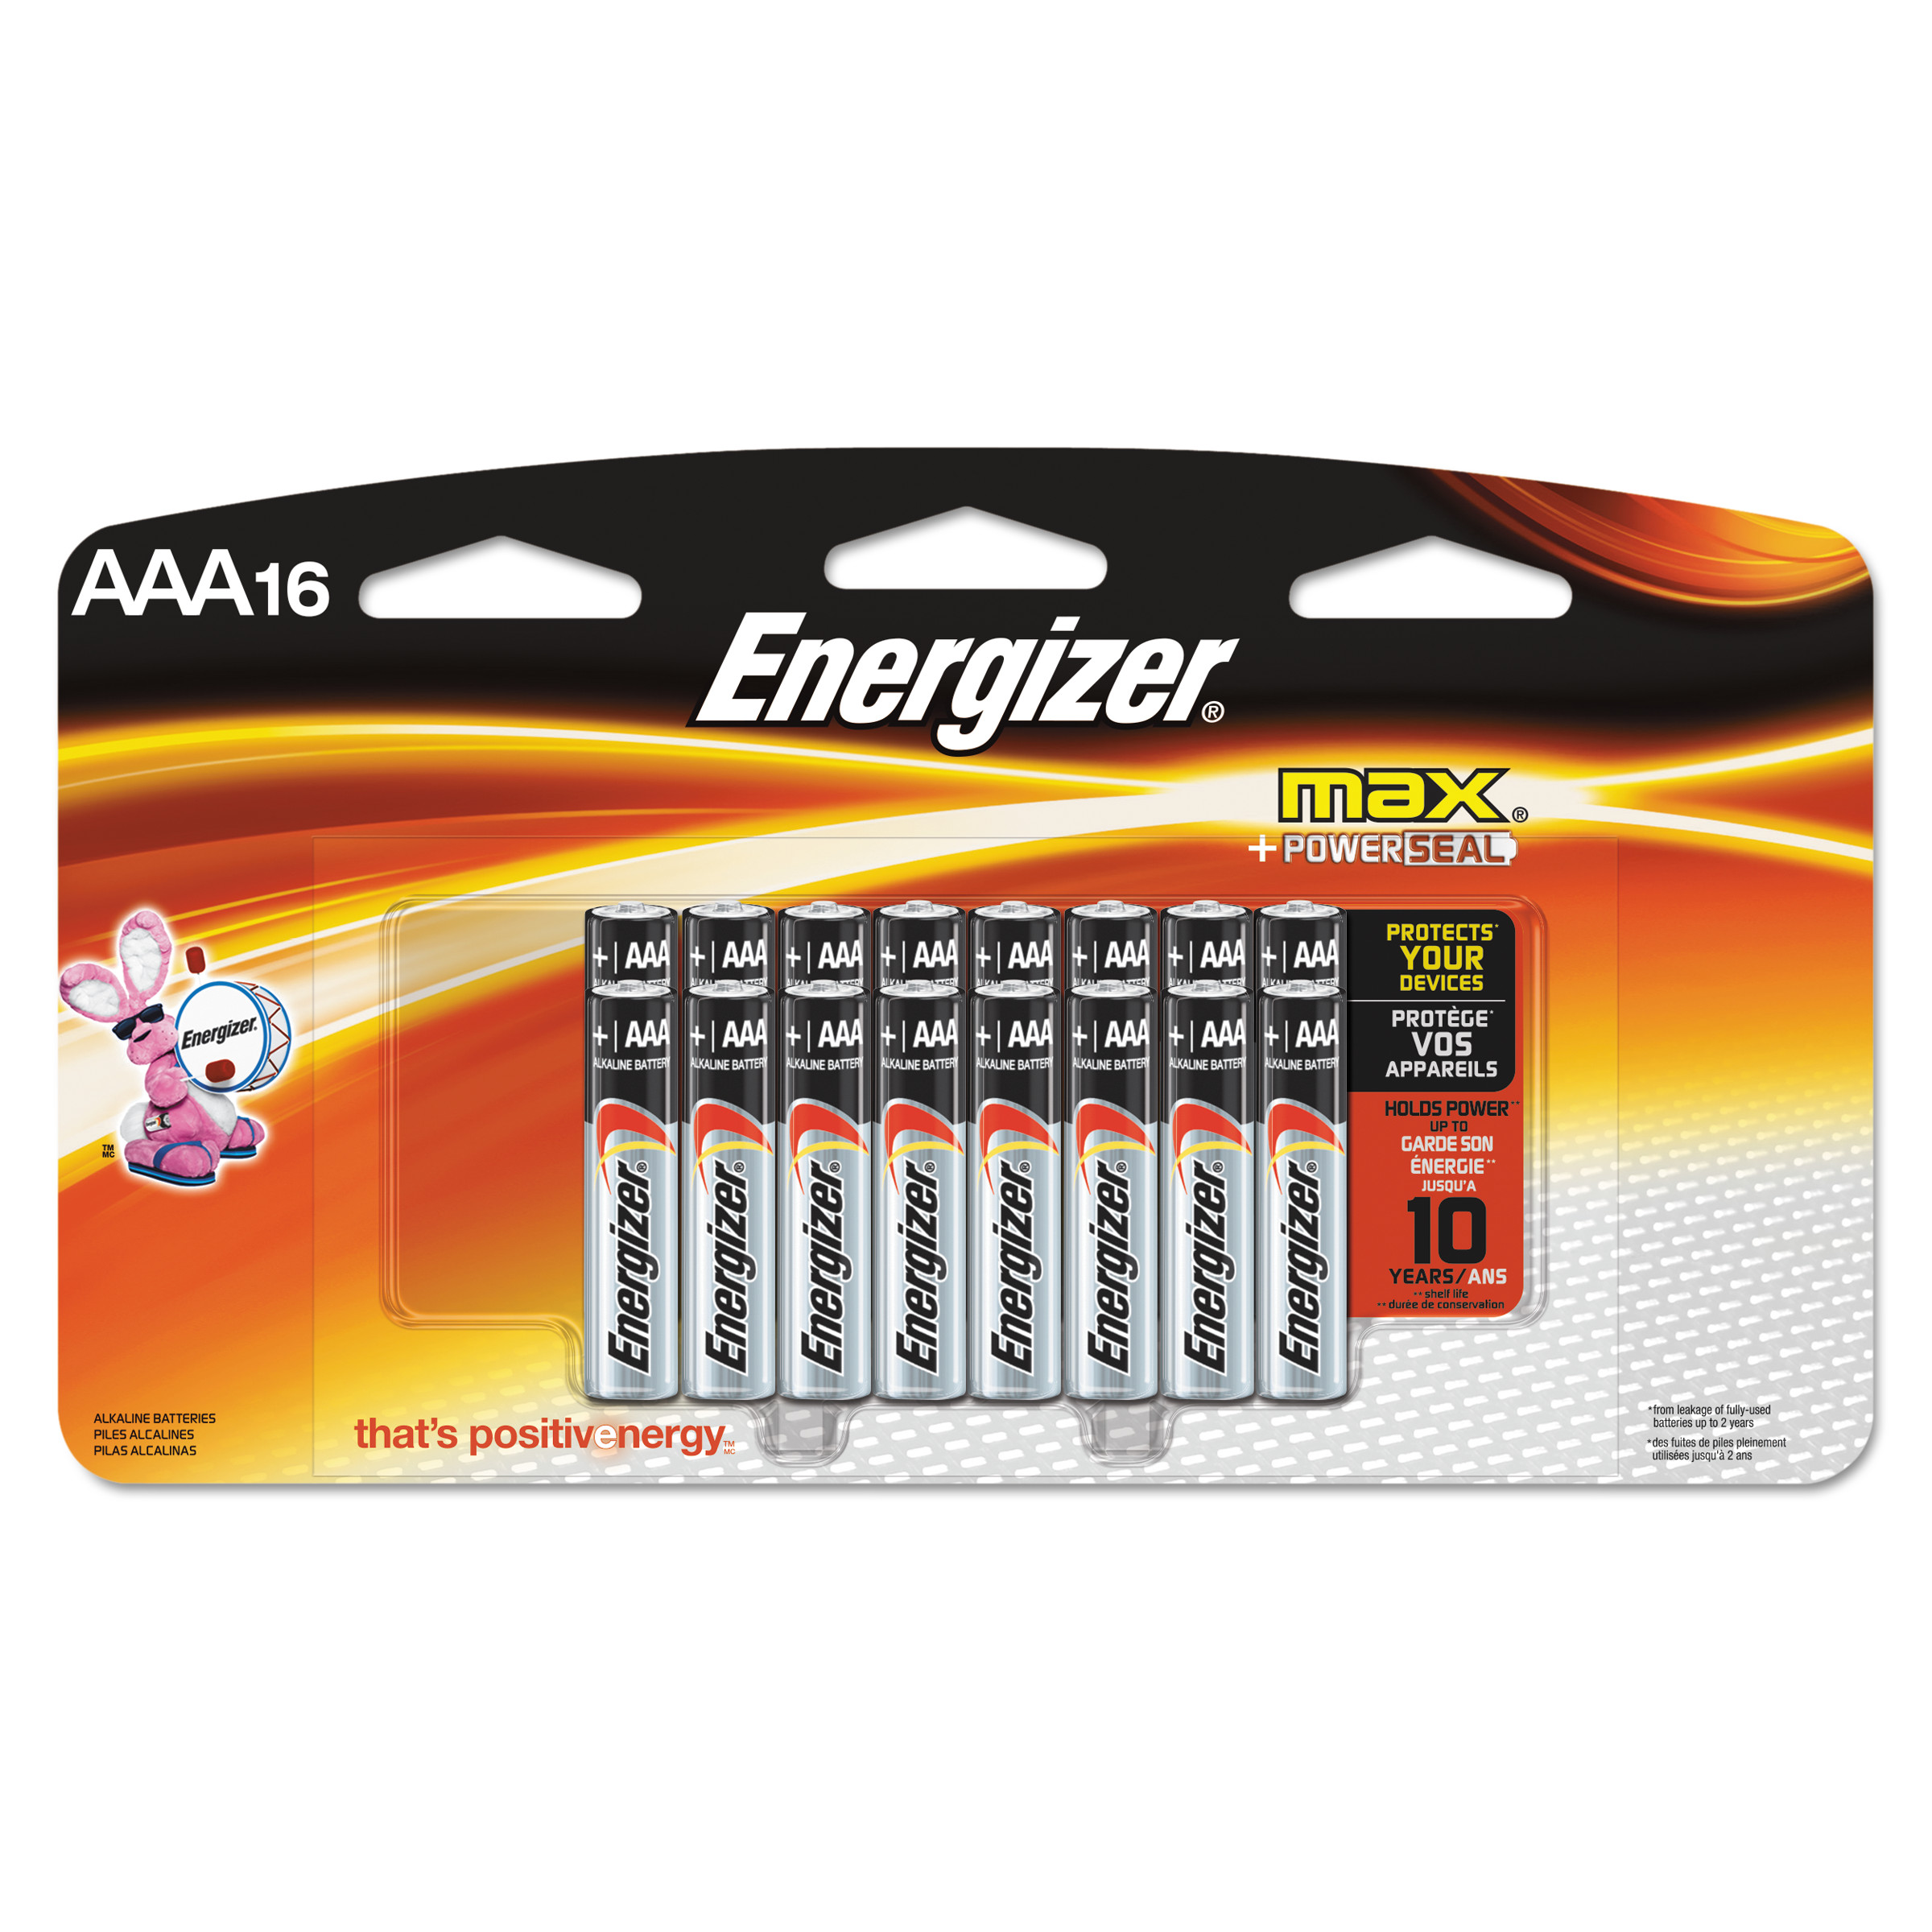 Energizer MAX Alkaline, AAA Batteries, 16 Pack